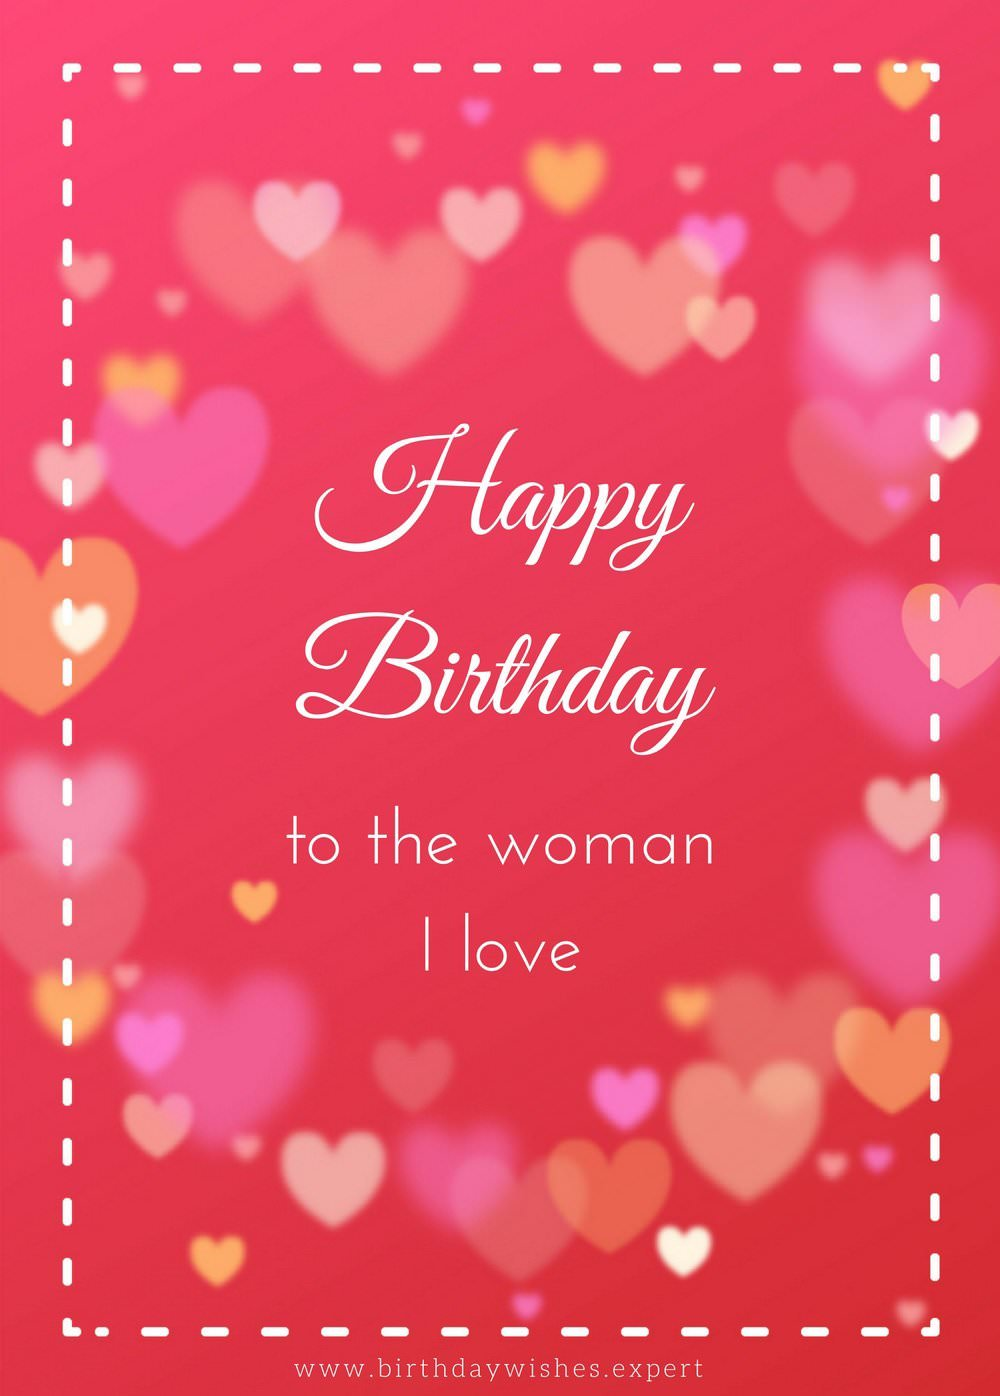 happy birthday wife images ; Happy-Birthday-to-the-woman-I-love